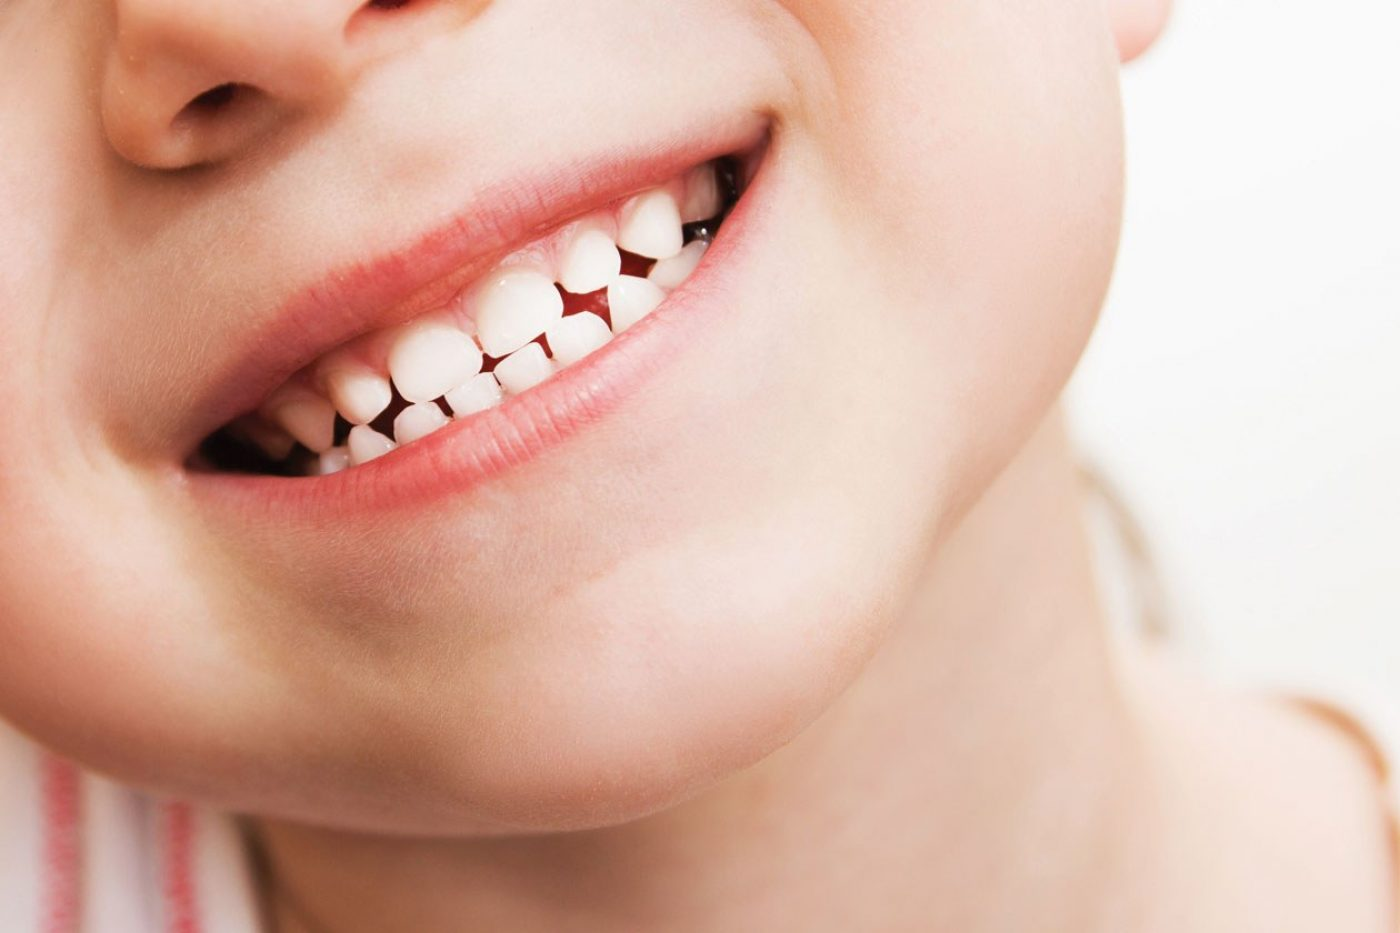 Childrens Teeth Pittville Lawn Dental Implant Clinic